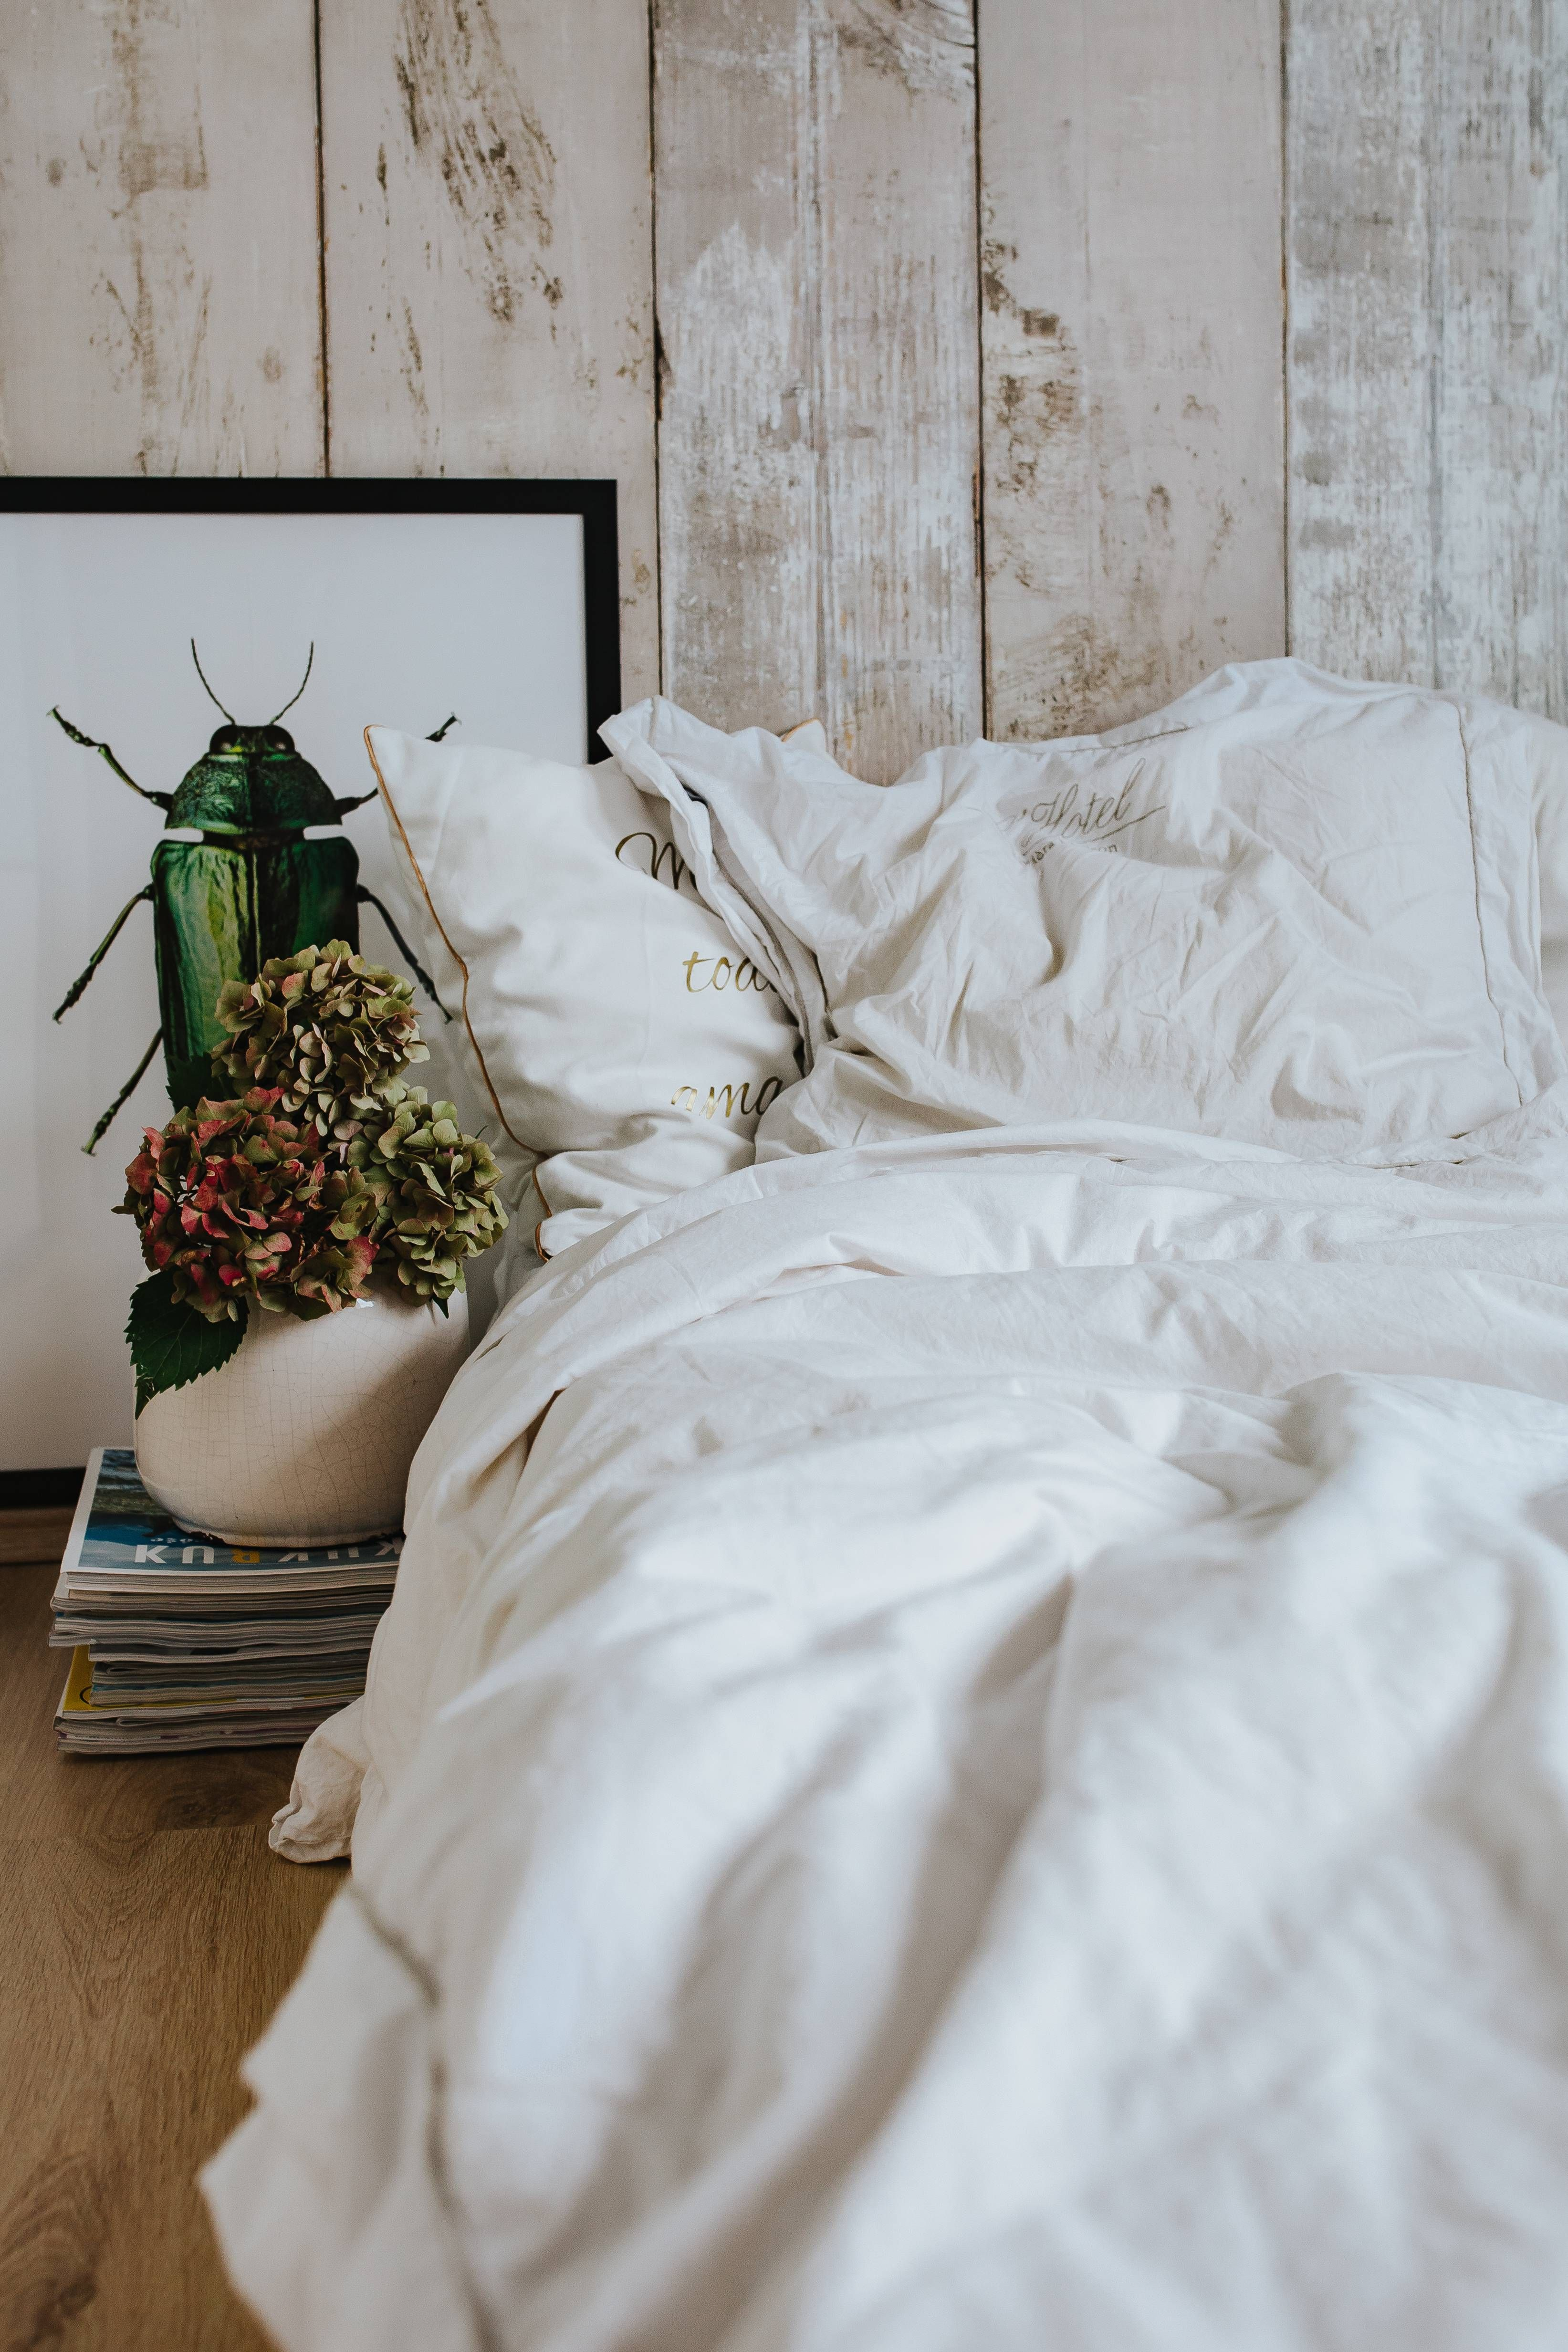 White Wood Planks For Your Bedroom Rustic Design Interior Wood Wall Bedroom Bed Pillow Remodel Bedroom Kids Bedroom Remodel Small Bedroom Decor